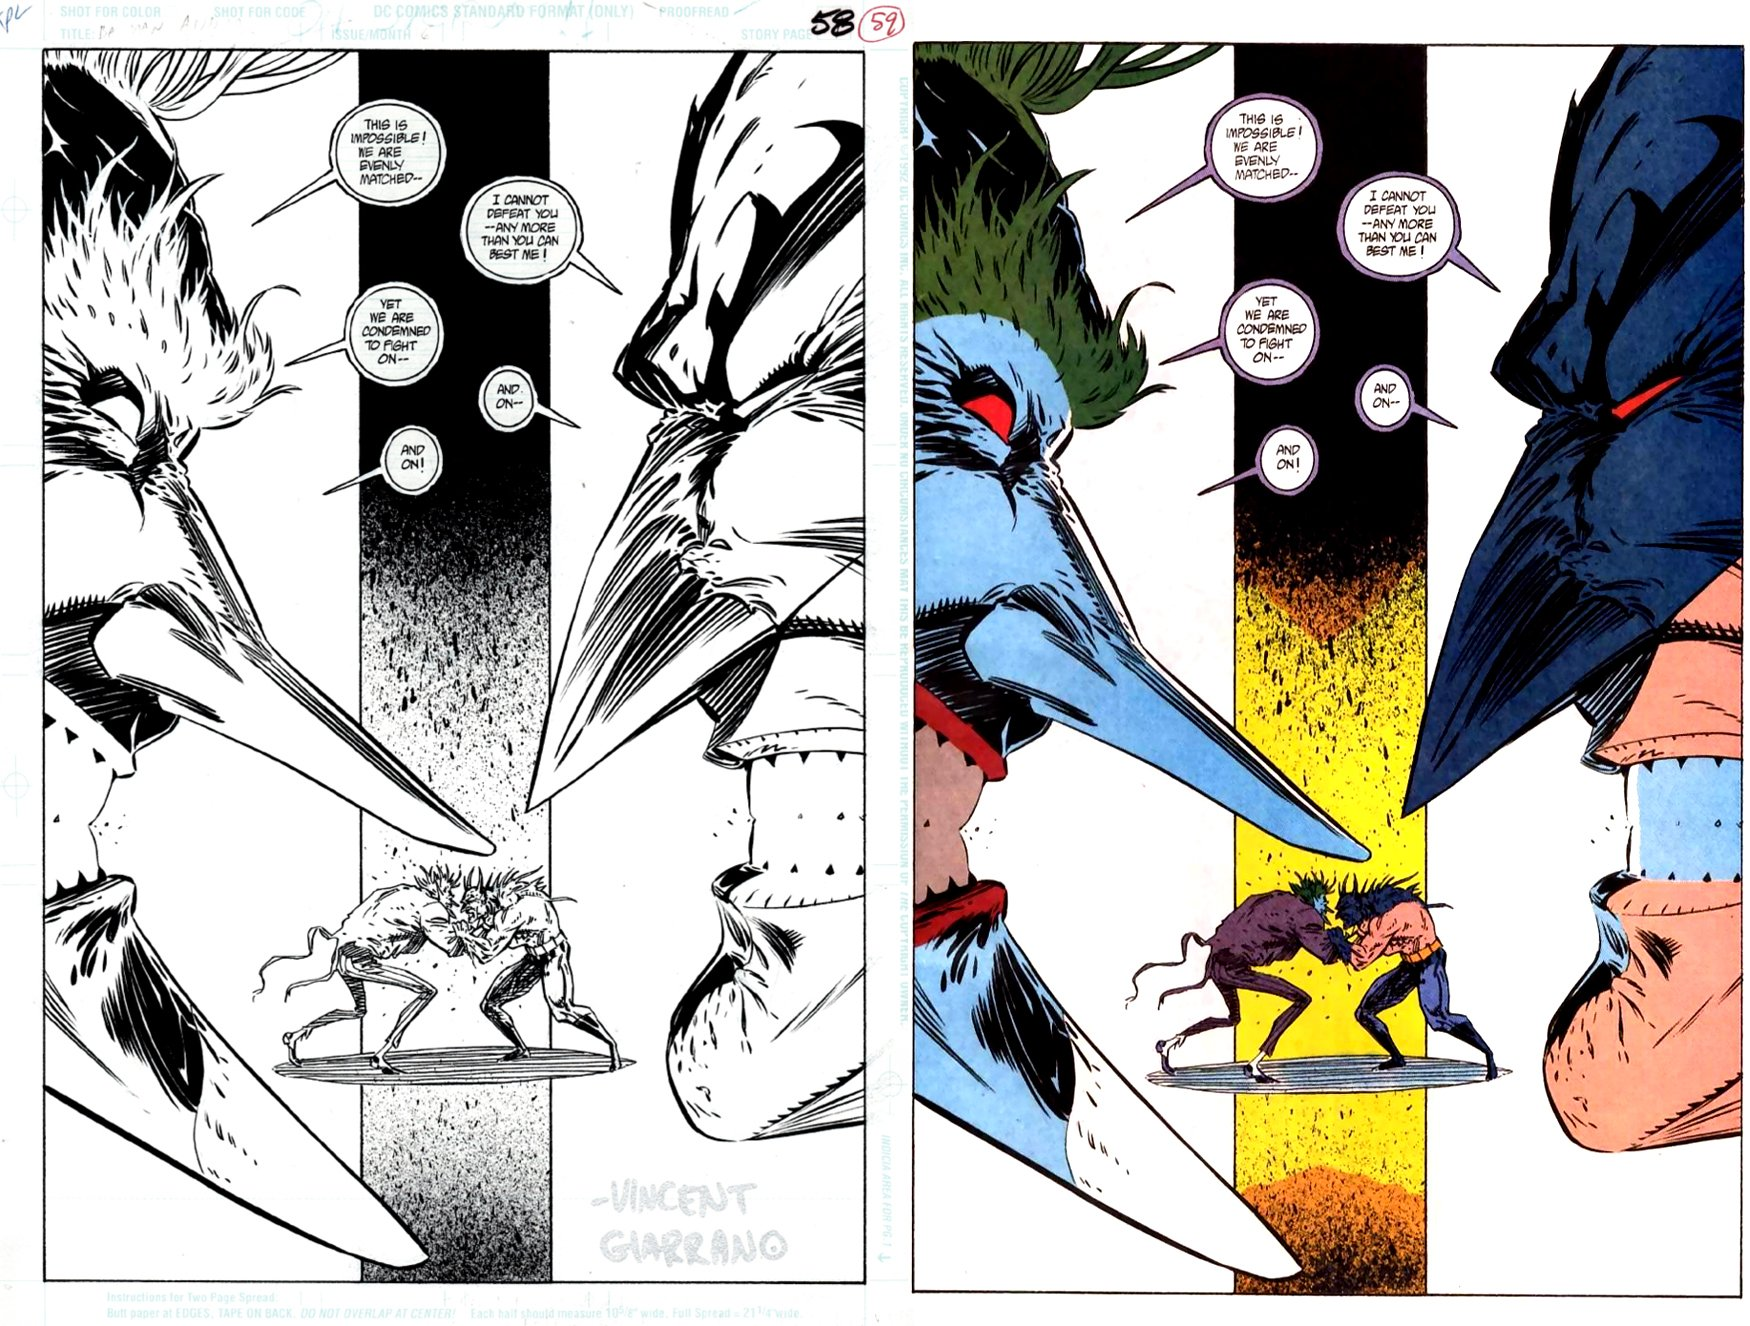 Batman Annual #16 p 58(SOLD LIVE ON 'DUELING DEALERS OF COMIC ART' EPISODE #29 PODCAST ON 8-4-2021 (RE-WATCH THIS FUNNY ART SELLING SHOW HERE)